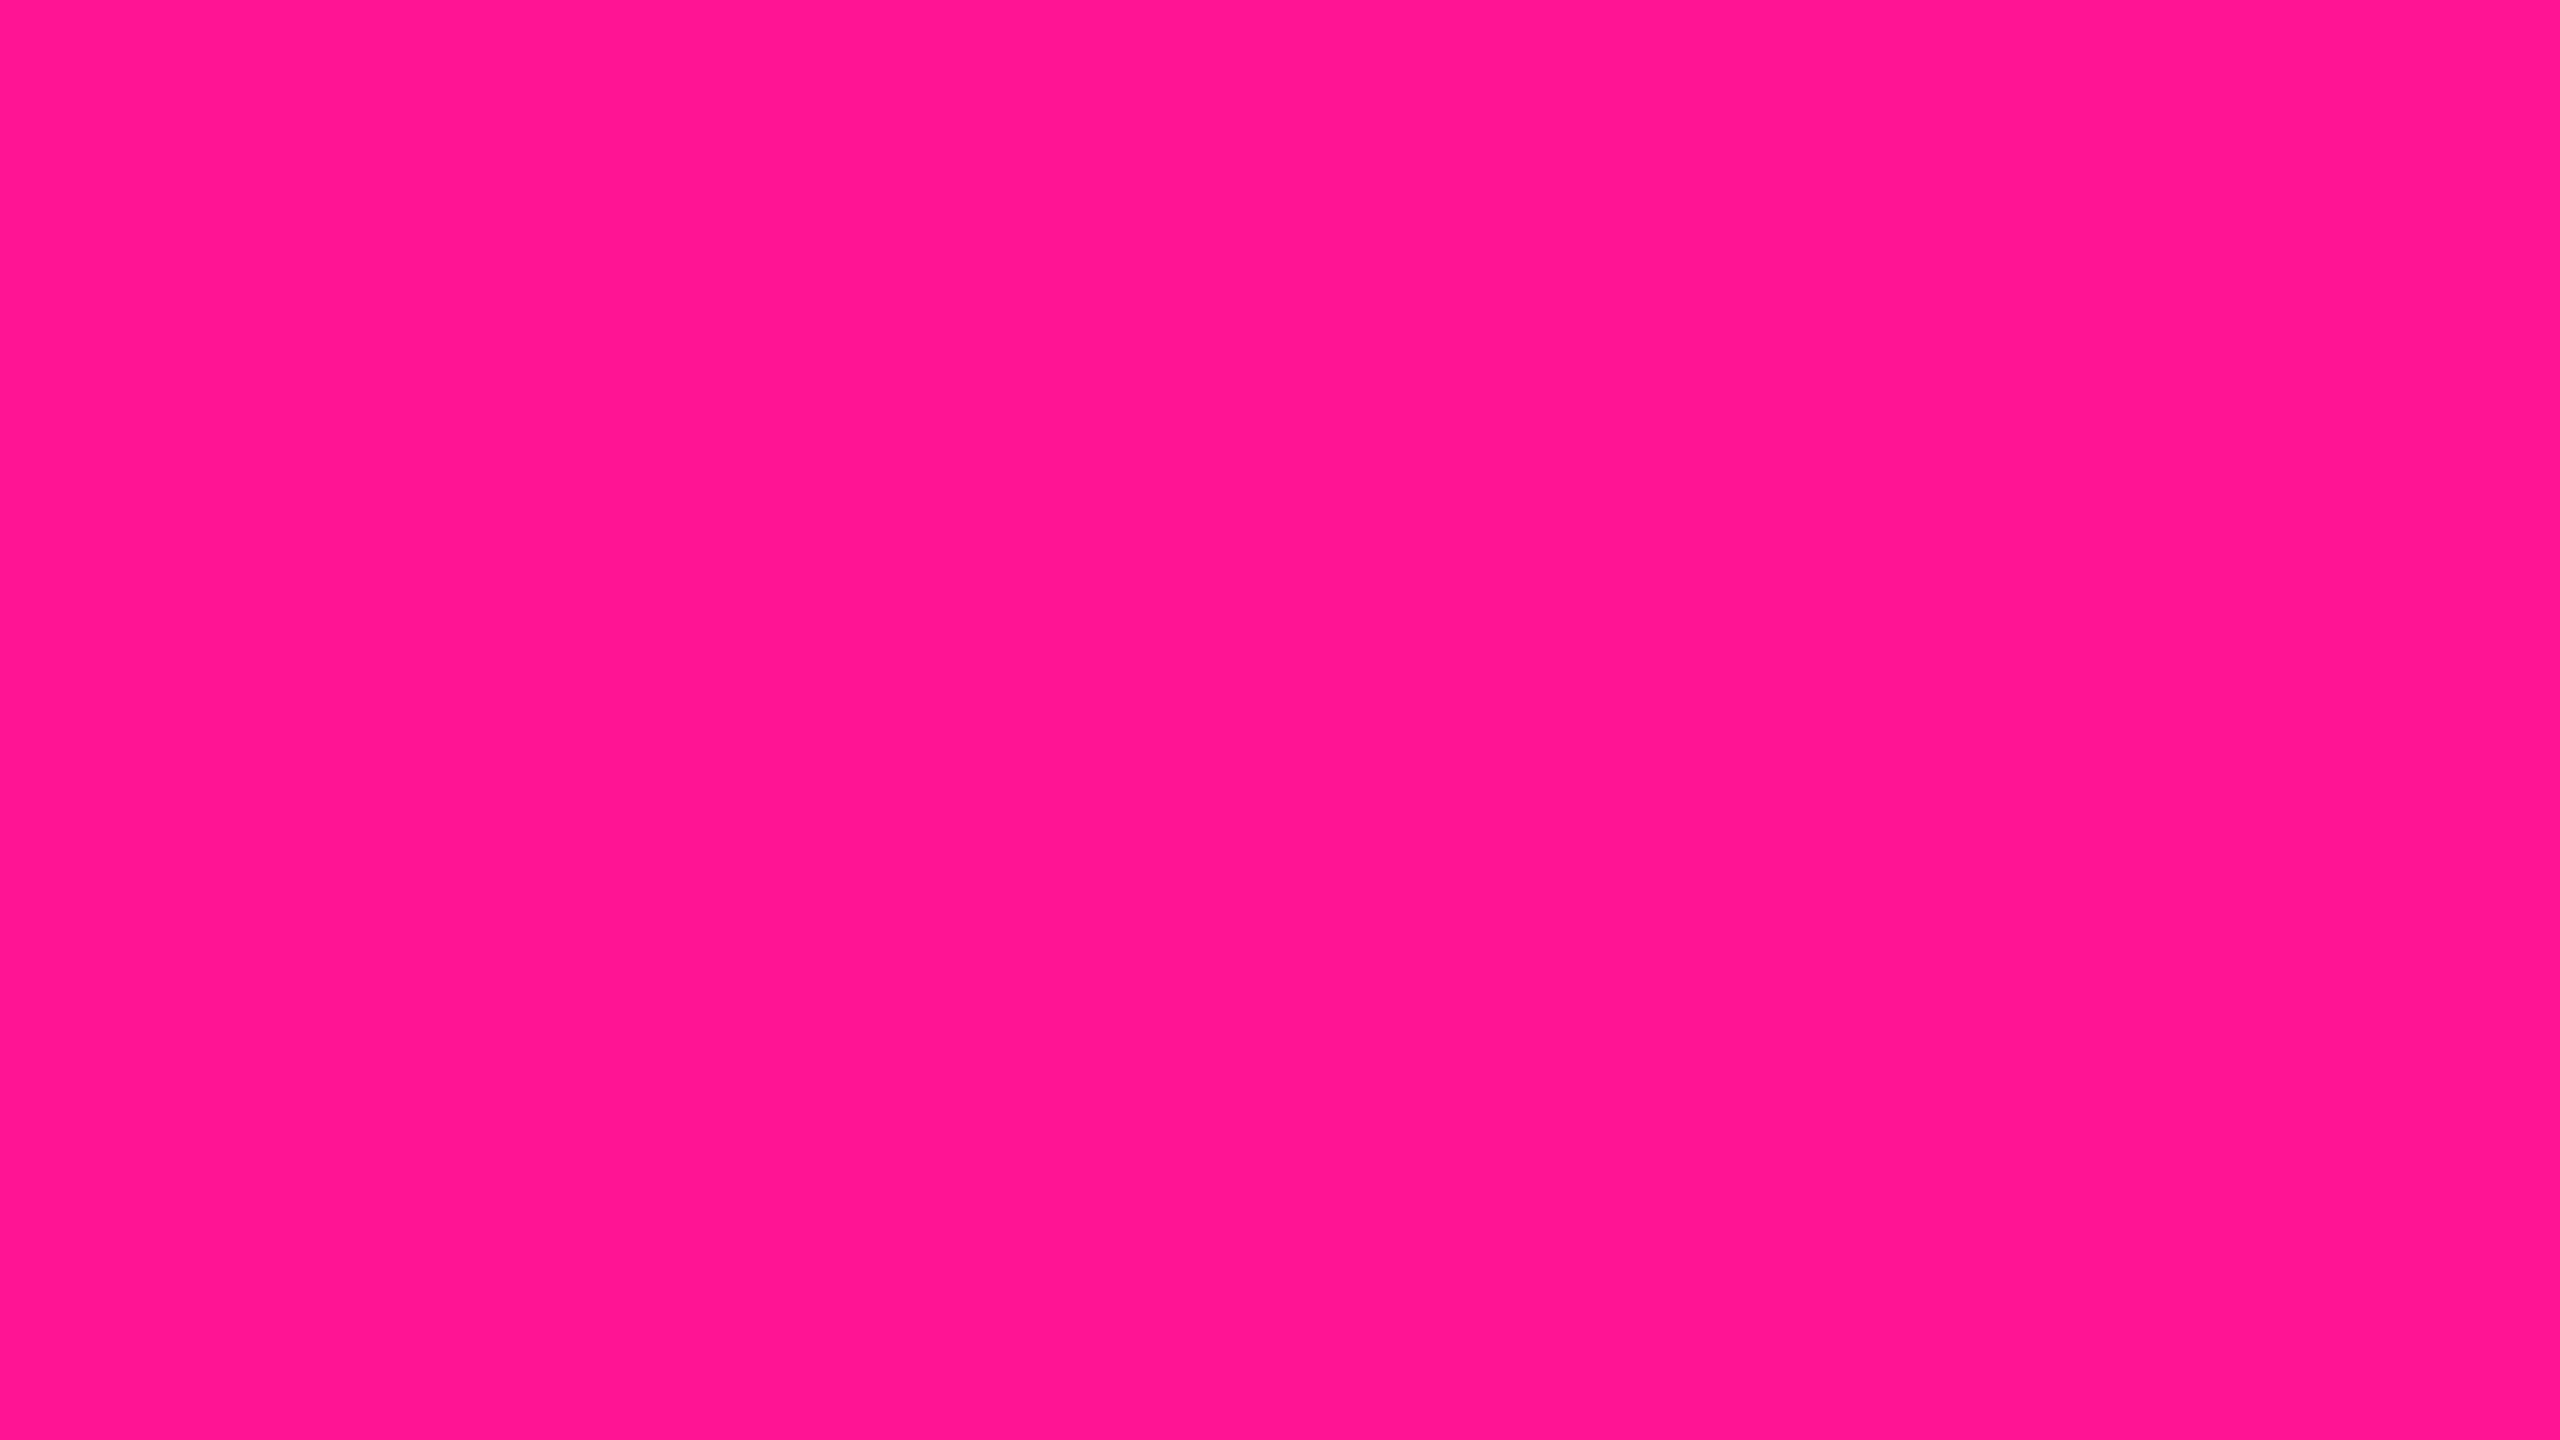 2560x1440 Deep Pink Solid Color Background 2560x1440